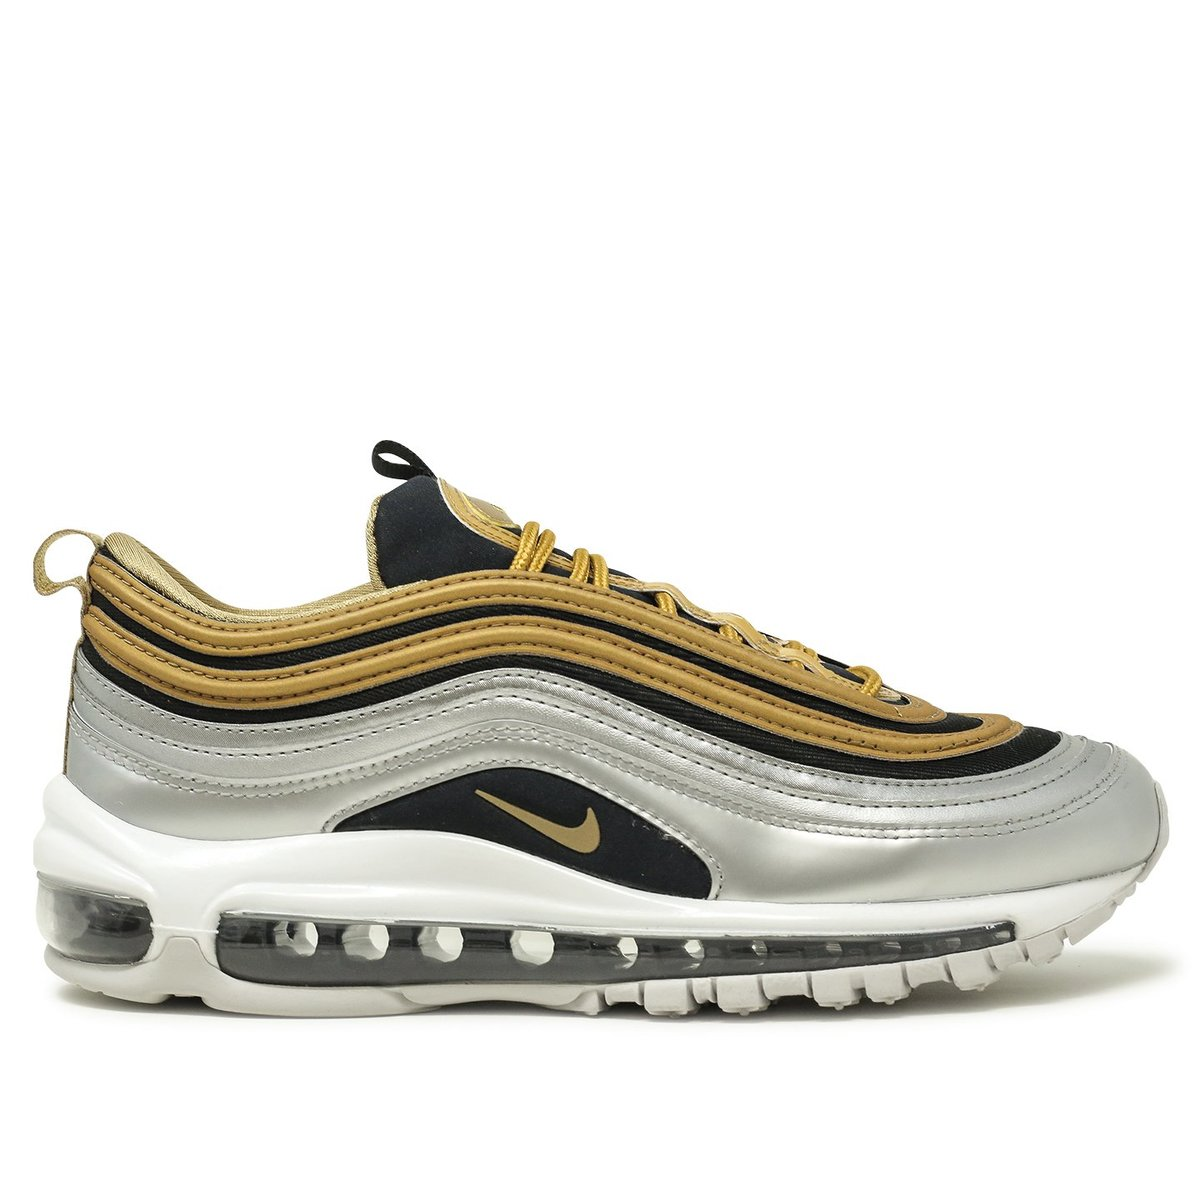 Nike Air Max 97 Special Edition Metallic Gold